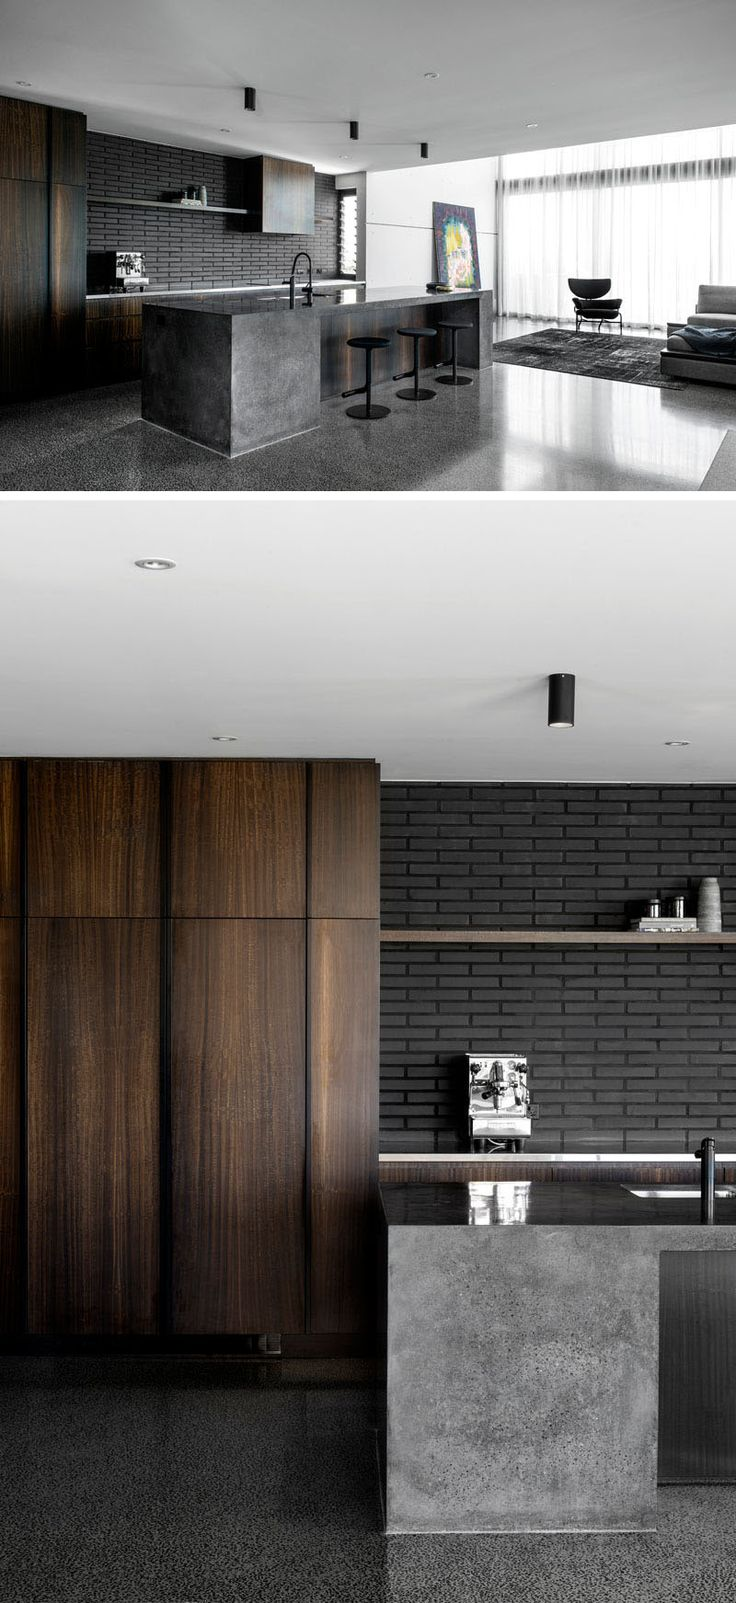 Dark brick has been paired with dark wood cabinets and a concrete island in this modern kitchen. #ModernKitchen #DarkBrick #Concrete